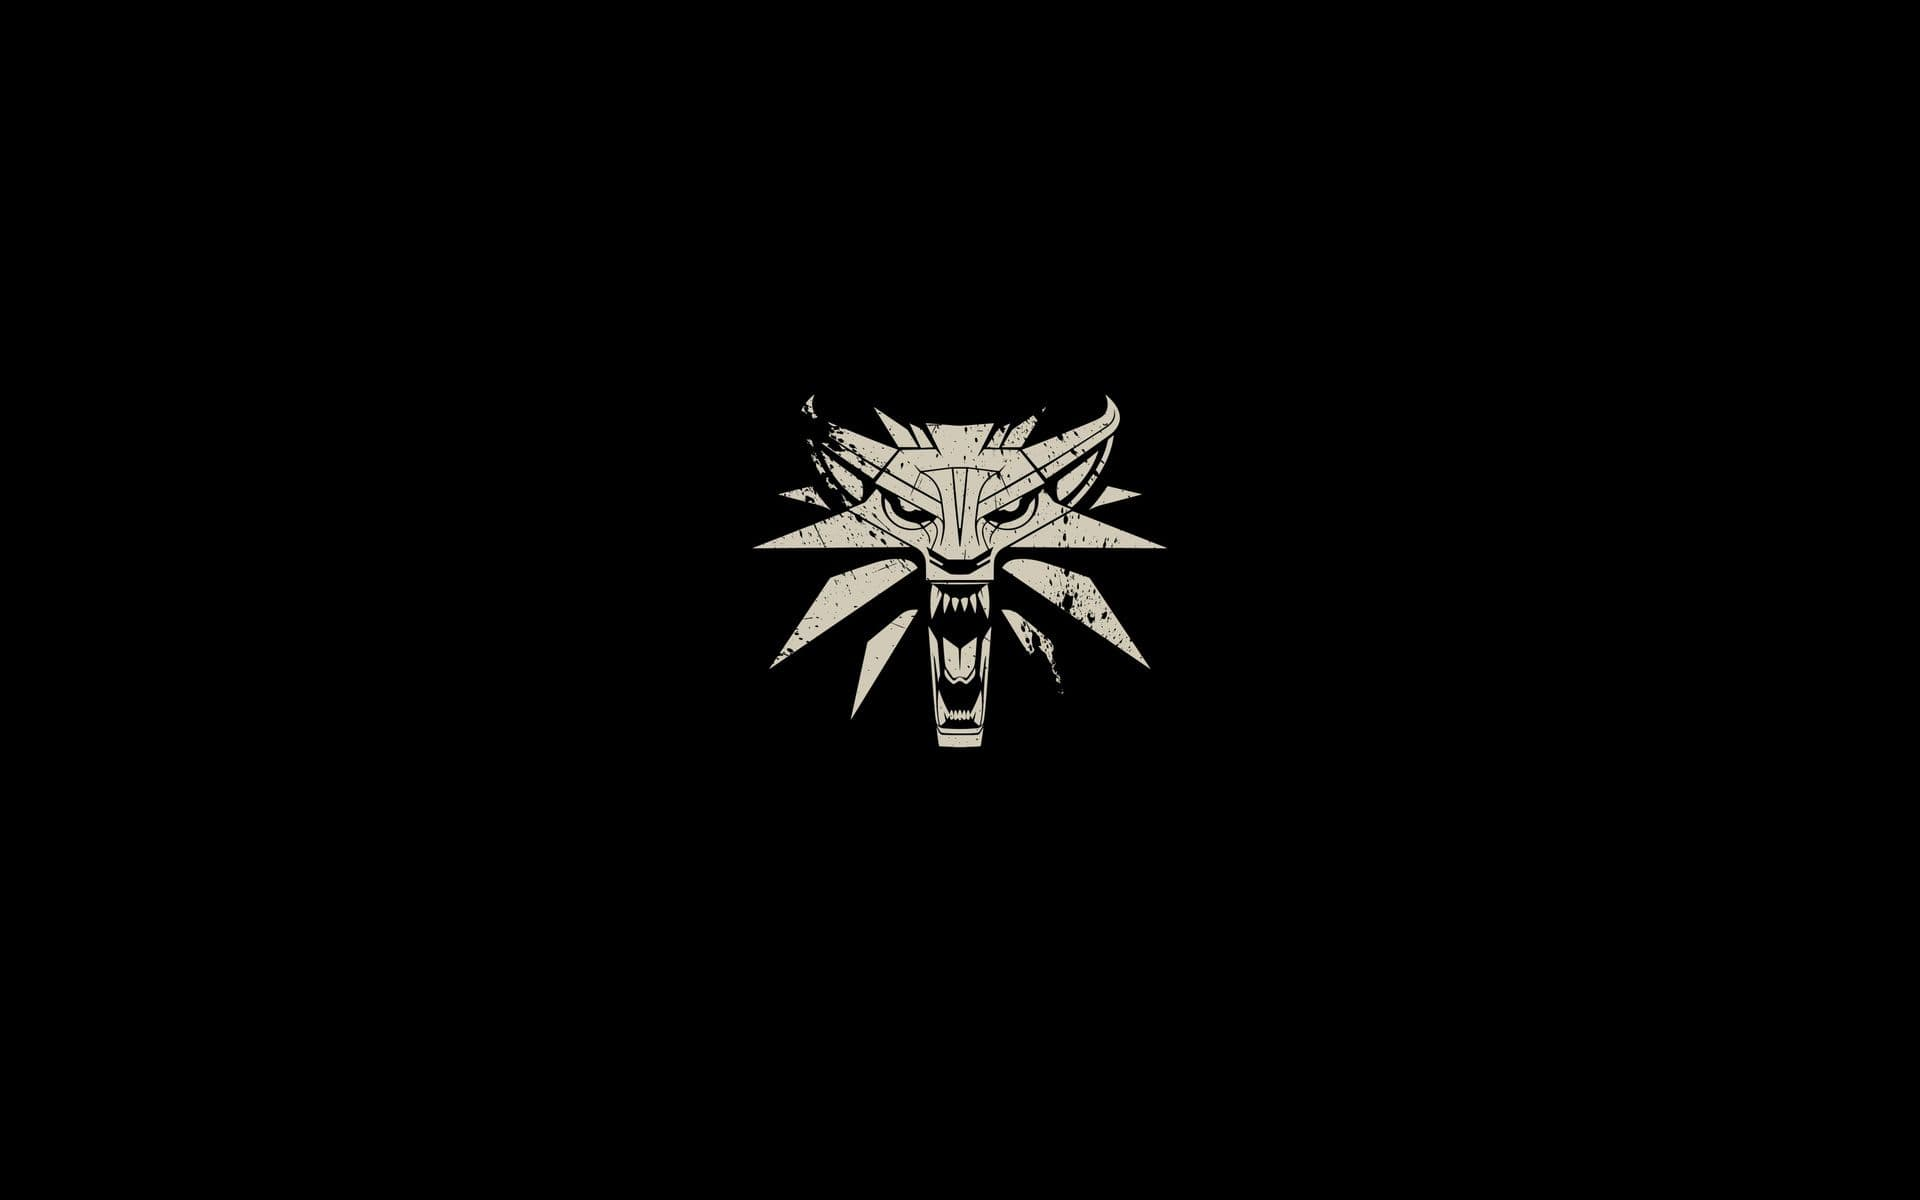 The Witcher Animated Film Logo